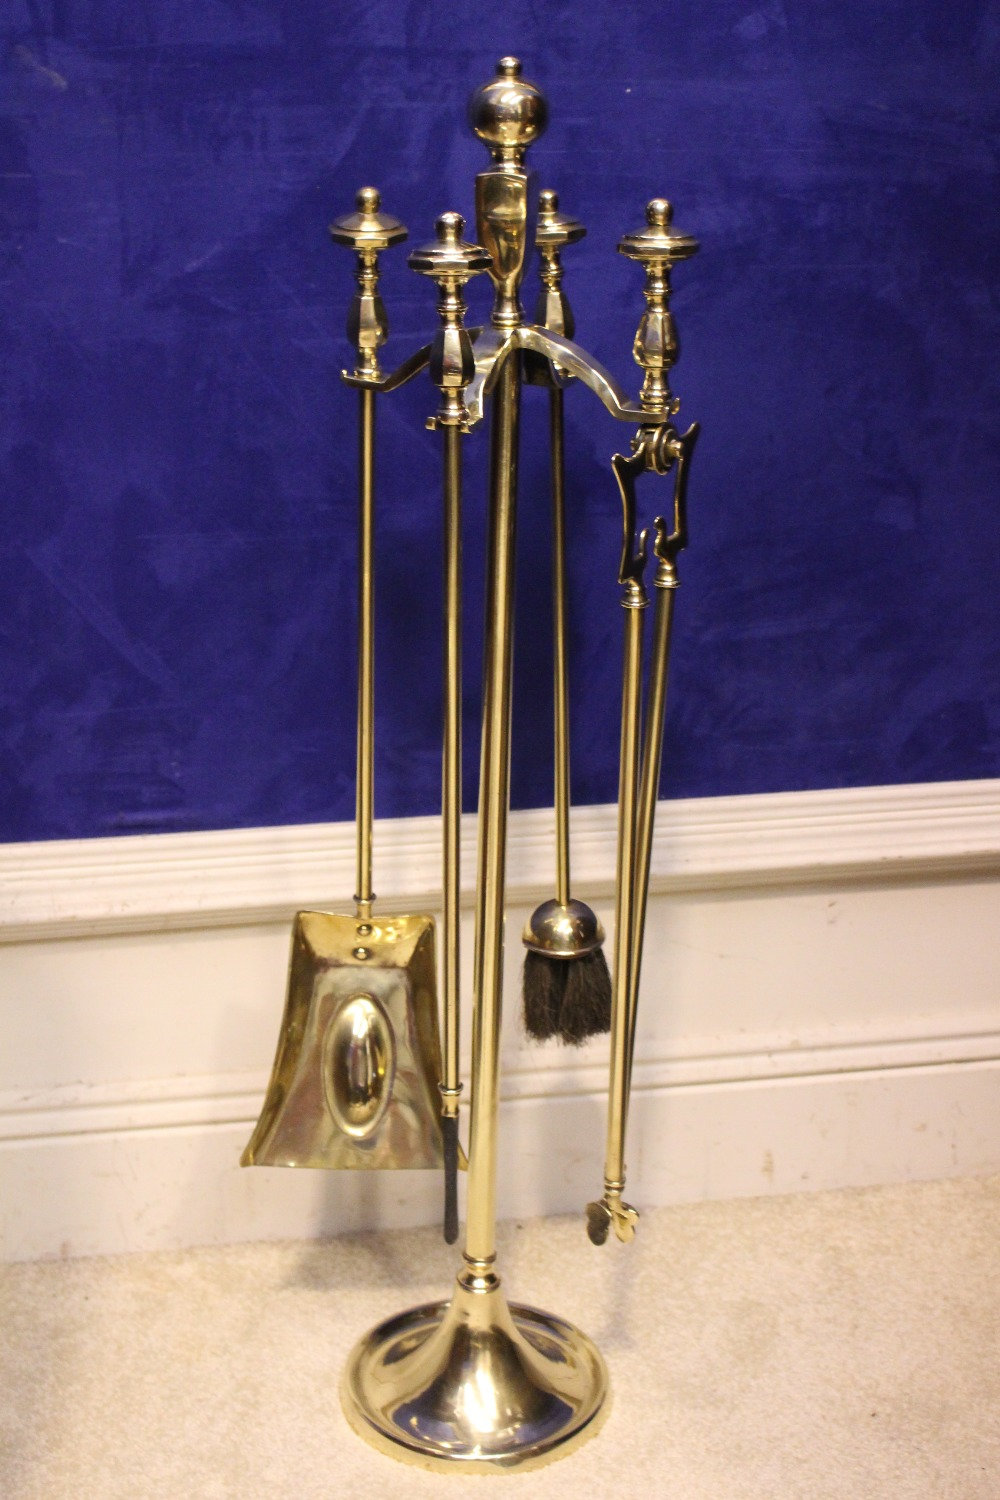 Lot 68 - A SET OF VICTORIAN BRASS FIRE IRONS on a stand, includes shovel, poker, tongs & brush, stand is